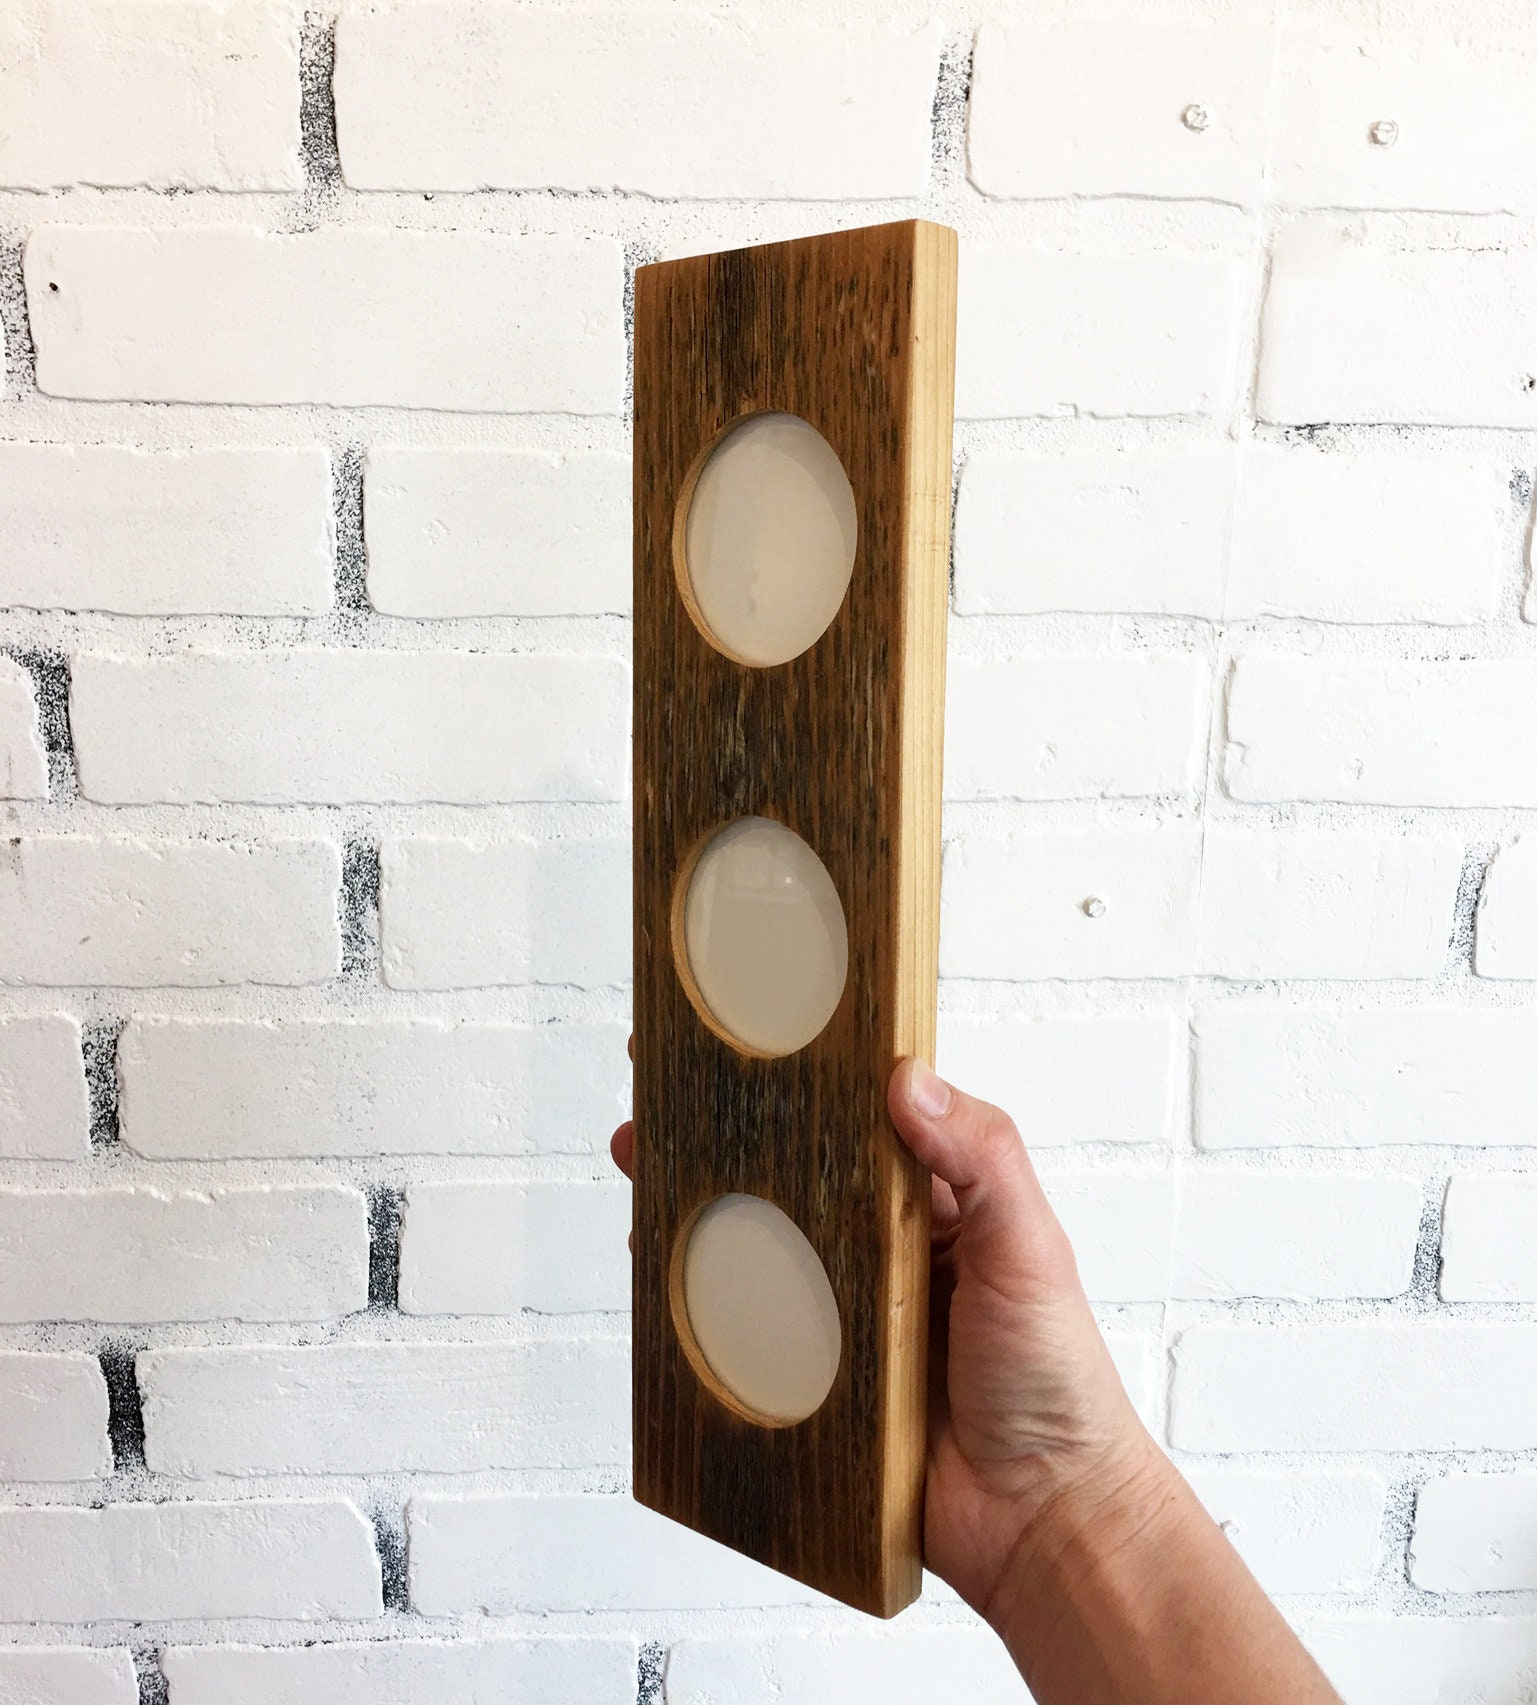 Reclaimed Wood Stacked Circle Window Picture Frame for (3) 2.5 x 3.5 ...